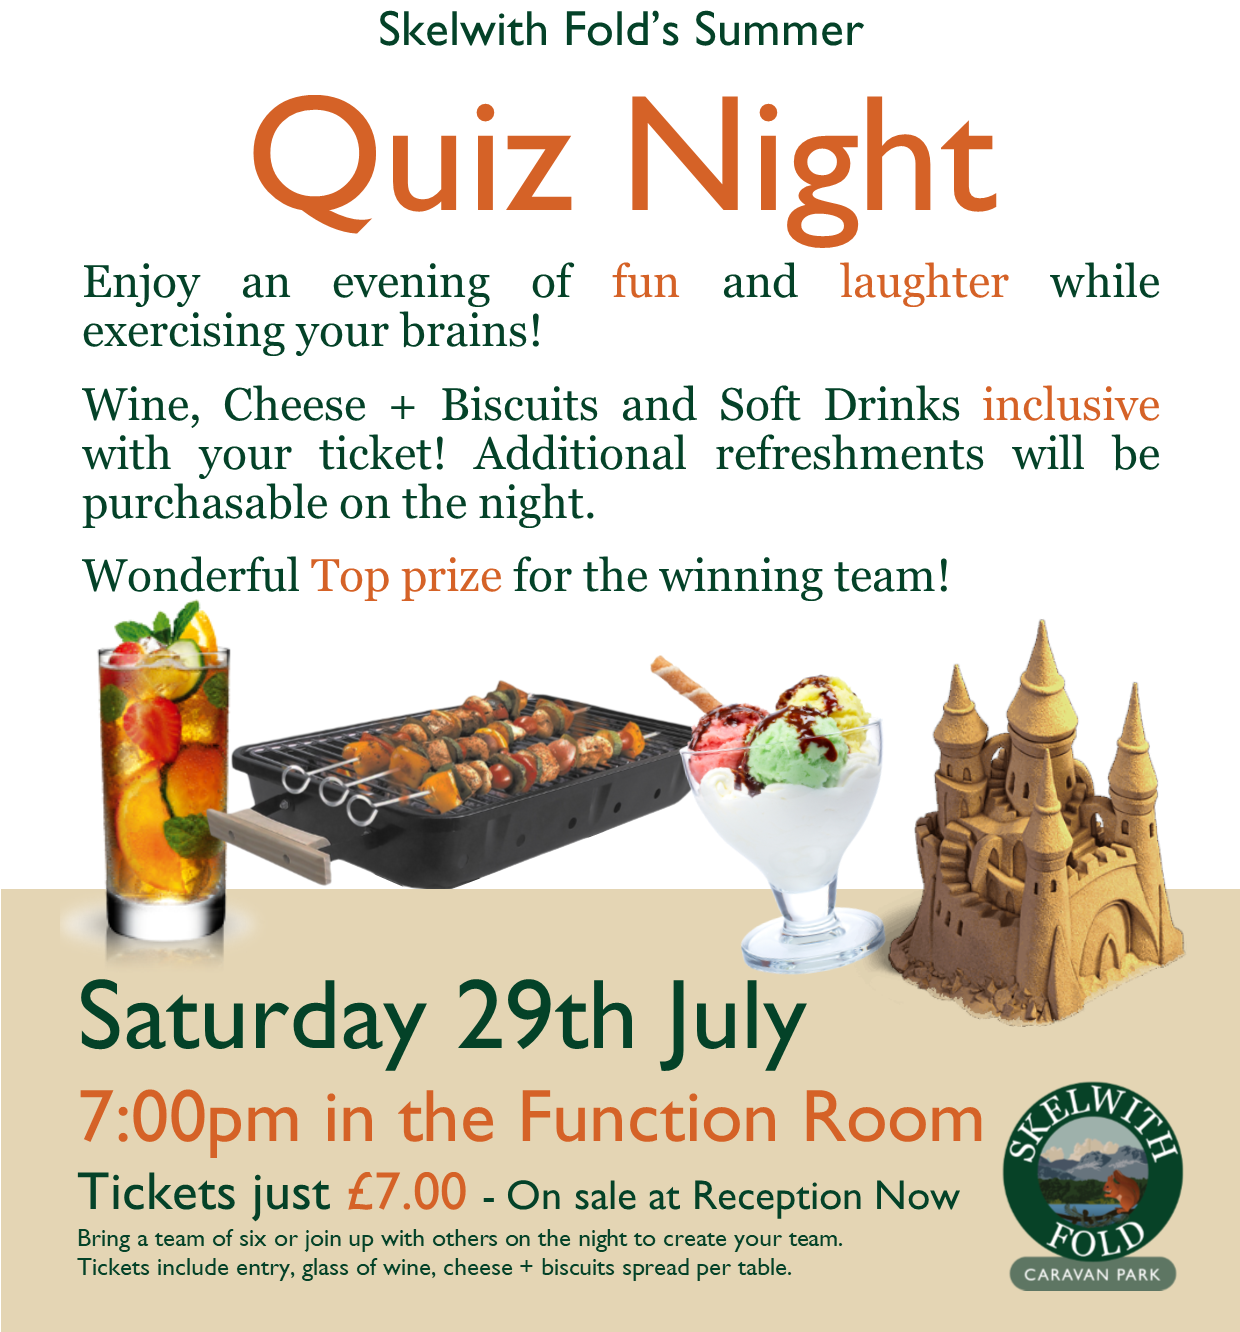 Skelwith Fold's Summer Quiz Night 2017